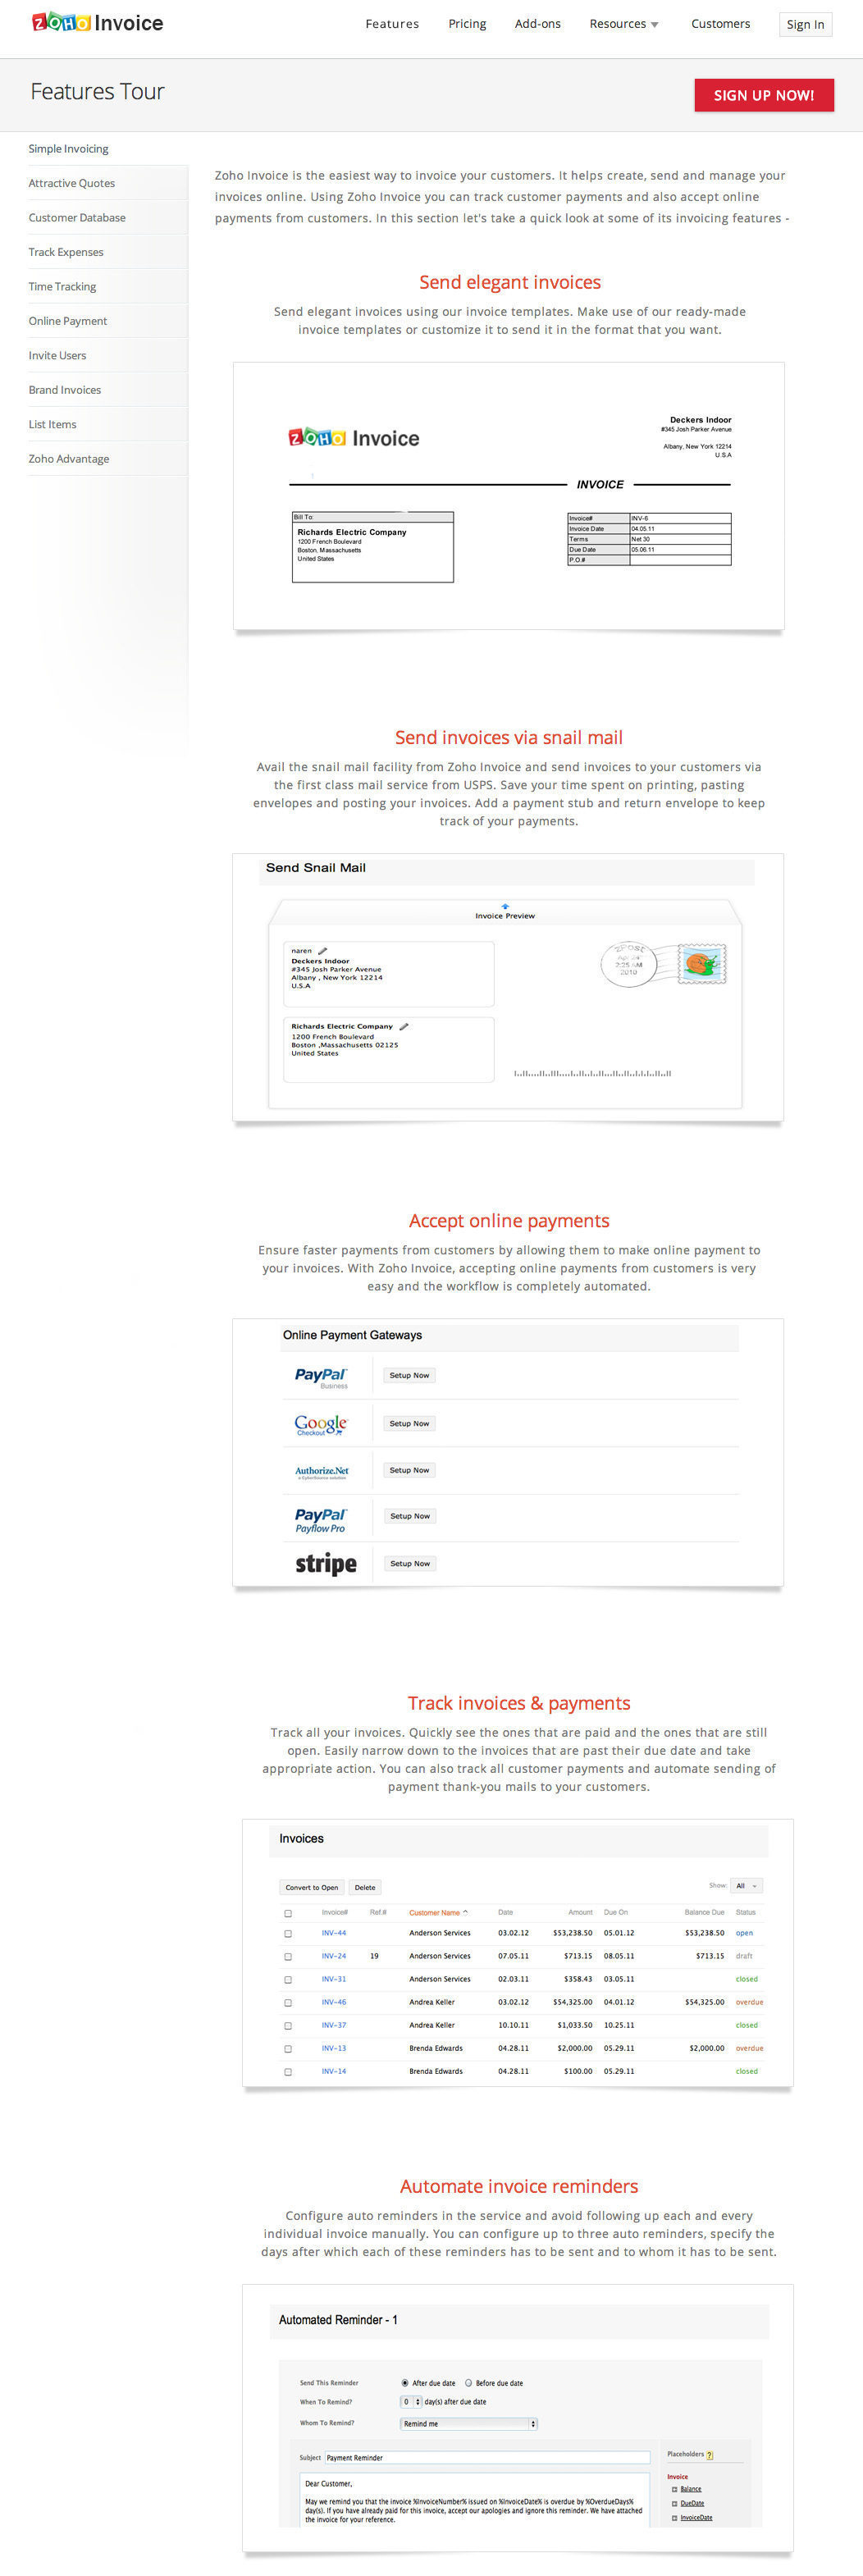 Coolmathgamesus  Splendid Top  Complaints And Reviews About Zoho Invoice With Luxury Zoho Invoice Pricing Zoho Invoice  Simple Invoicing  With Attractive Indian Tax Invoice Software Free Download Also Best Free Online Invoicing In Addition Invoice Software Free Download And Invoice Process Flow Chart As Well As Free Printable Invoice Pdf Additionally Reconcile Invoices Definition From Consumeraffairscom With Coolmathgamesus  Luxury Top  Complaints And Reviews About Zoho Invoice With Attractive Zoho Invoice Pricing Zoho Invoice  Simple Invoicing  And Splendid Indian Tax Invoice Software Free Download Also Best Free Online Invoicing In Addition Invoice Software Free Download From Consumeraffairscom